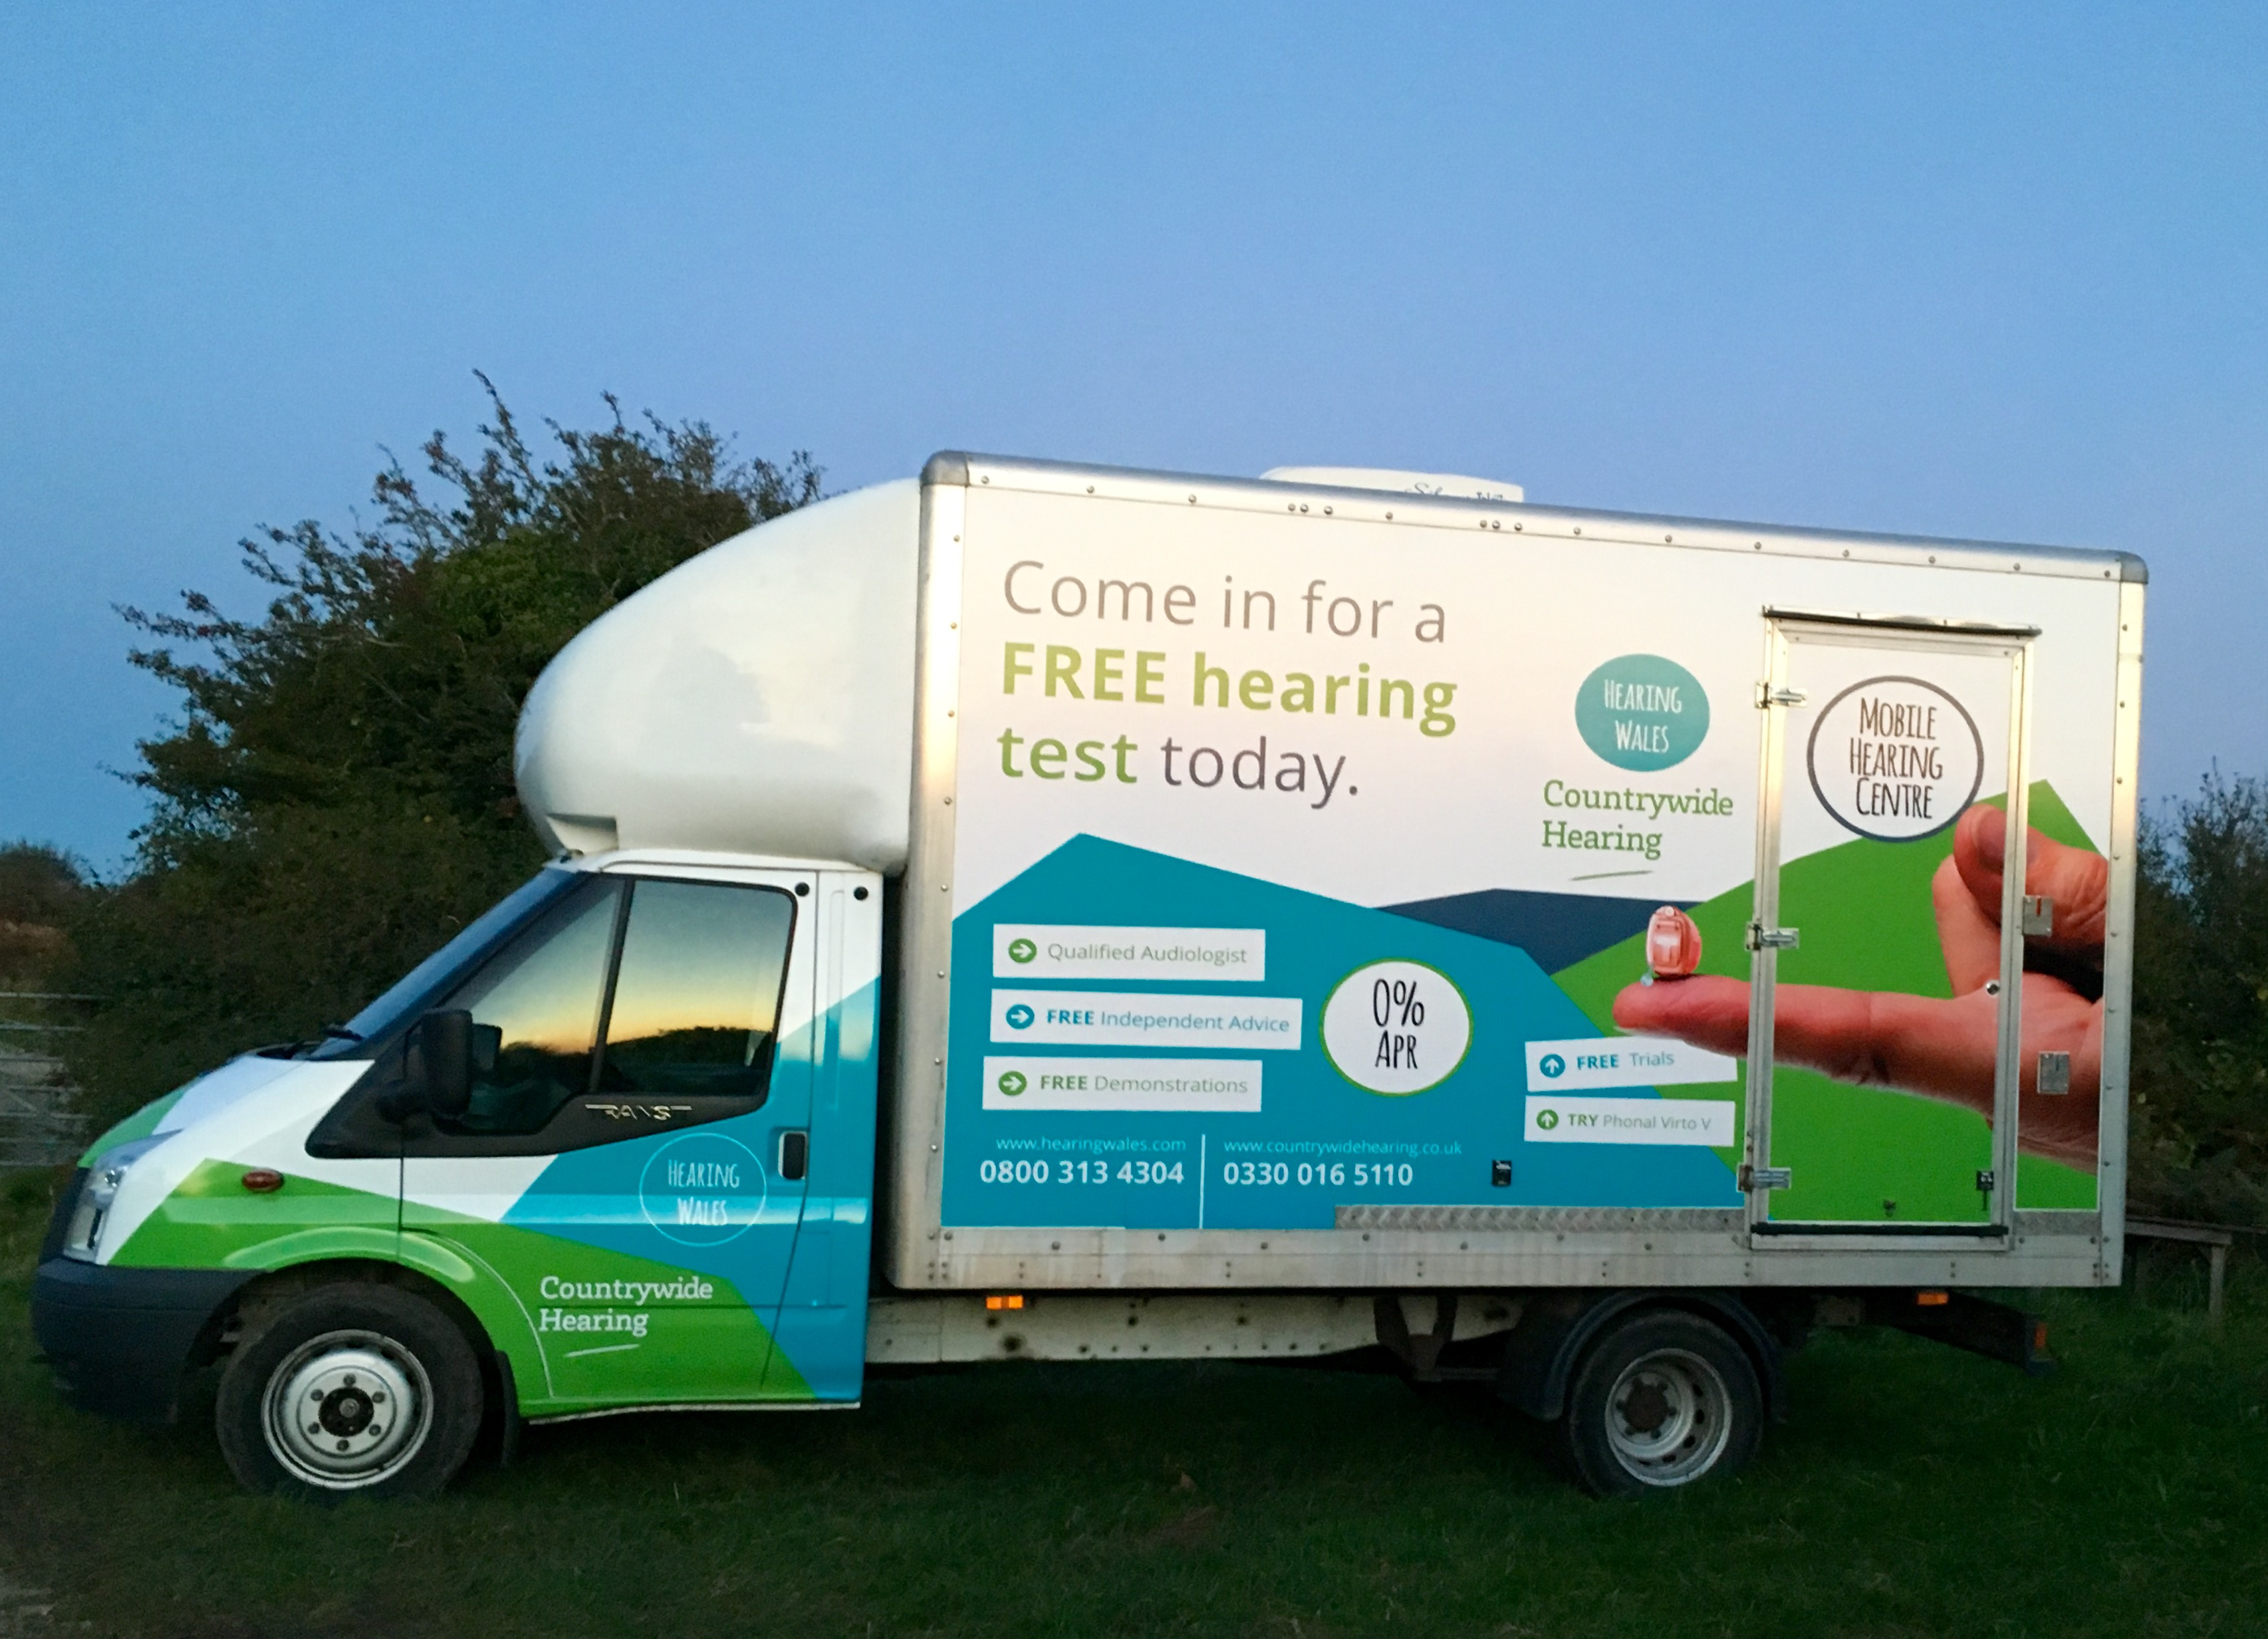 Hearing aids, free hearing tests & hearing healthcare across Wales